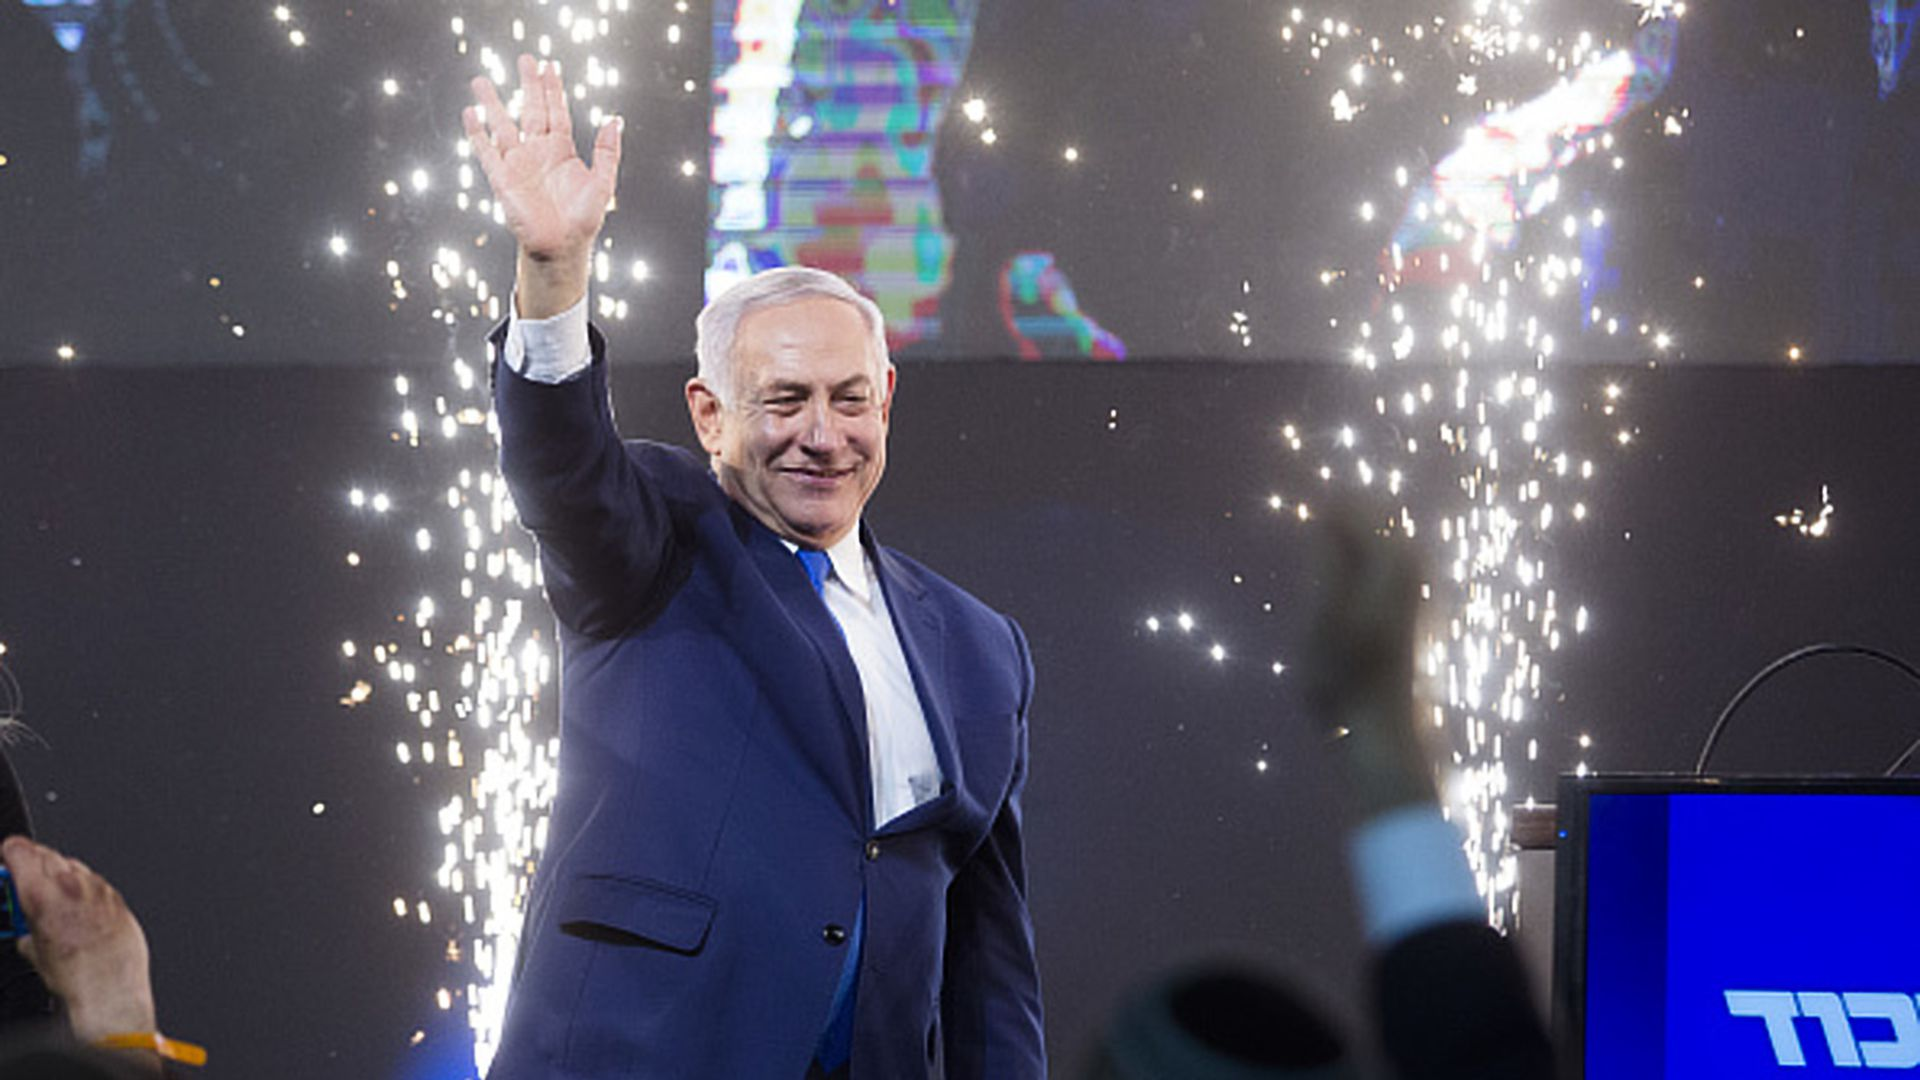 Israel's Prime Minister Benjamin Netanyahu has declared victory in the country's closely fought election.